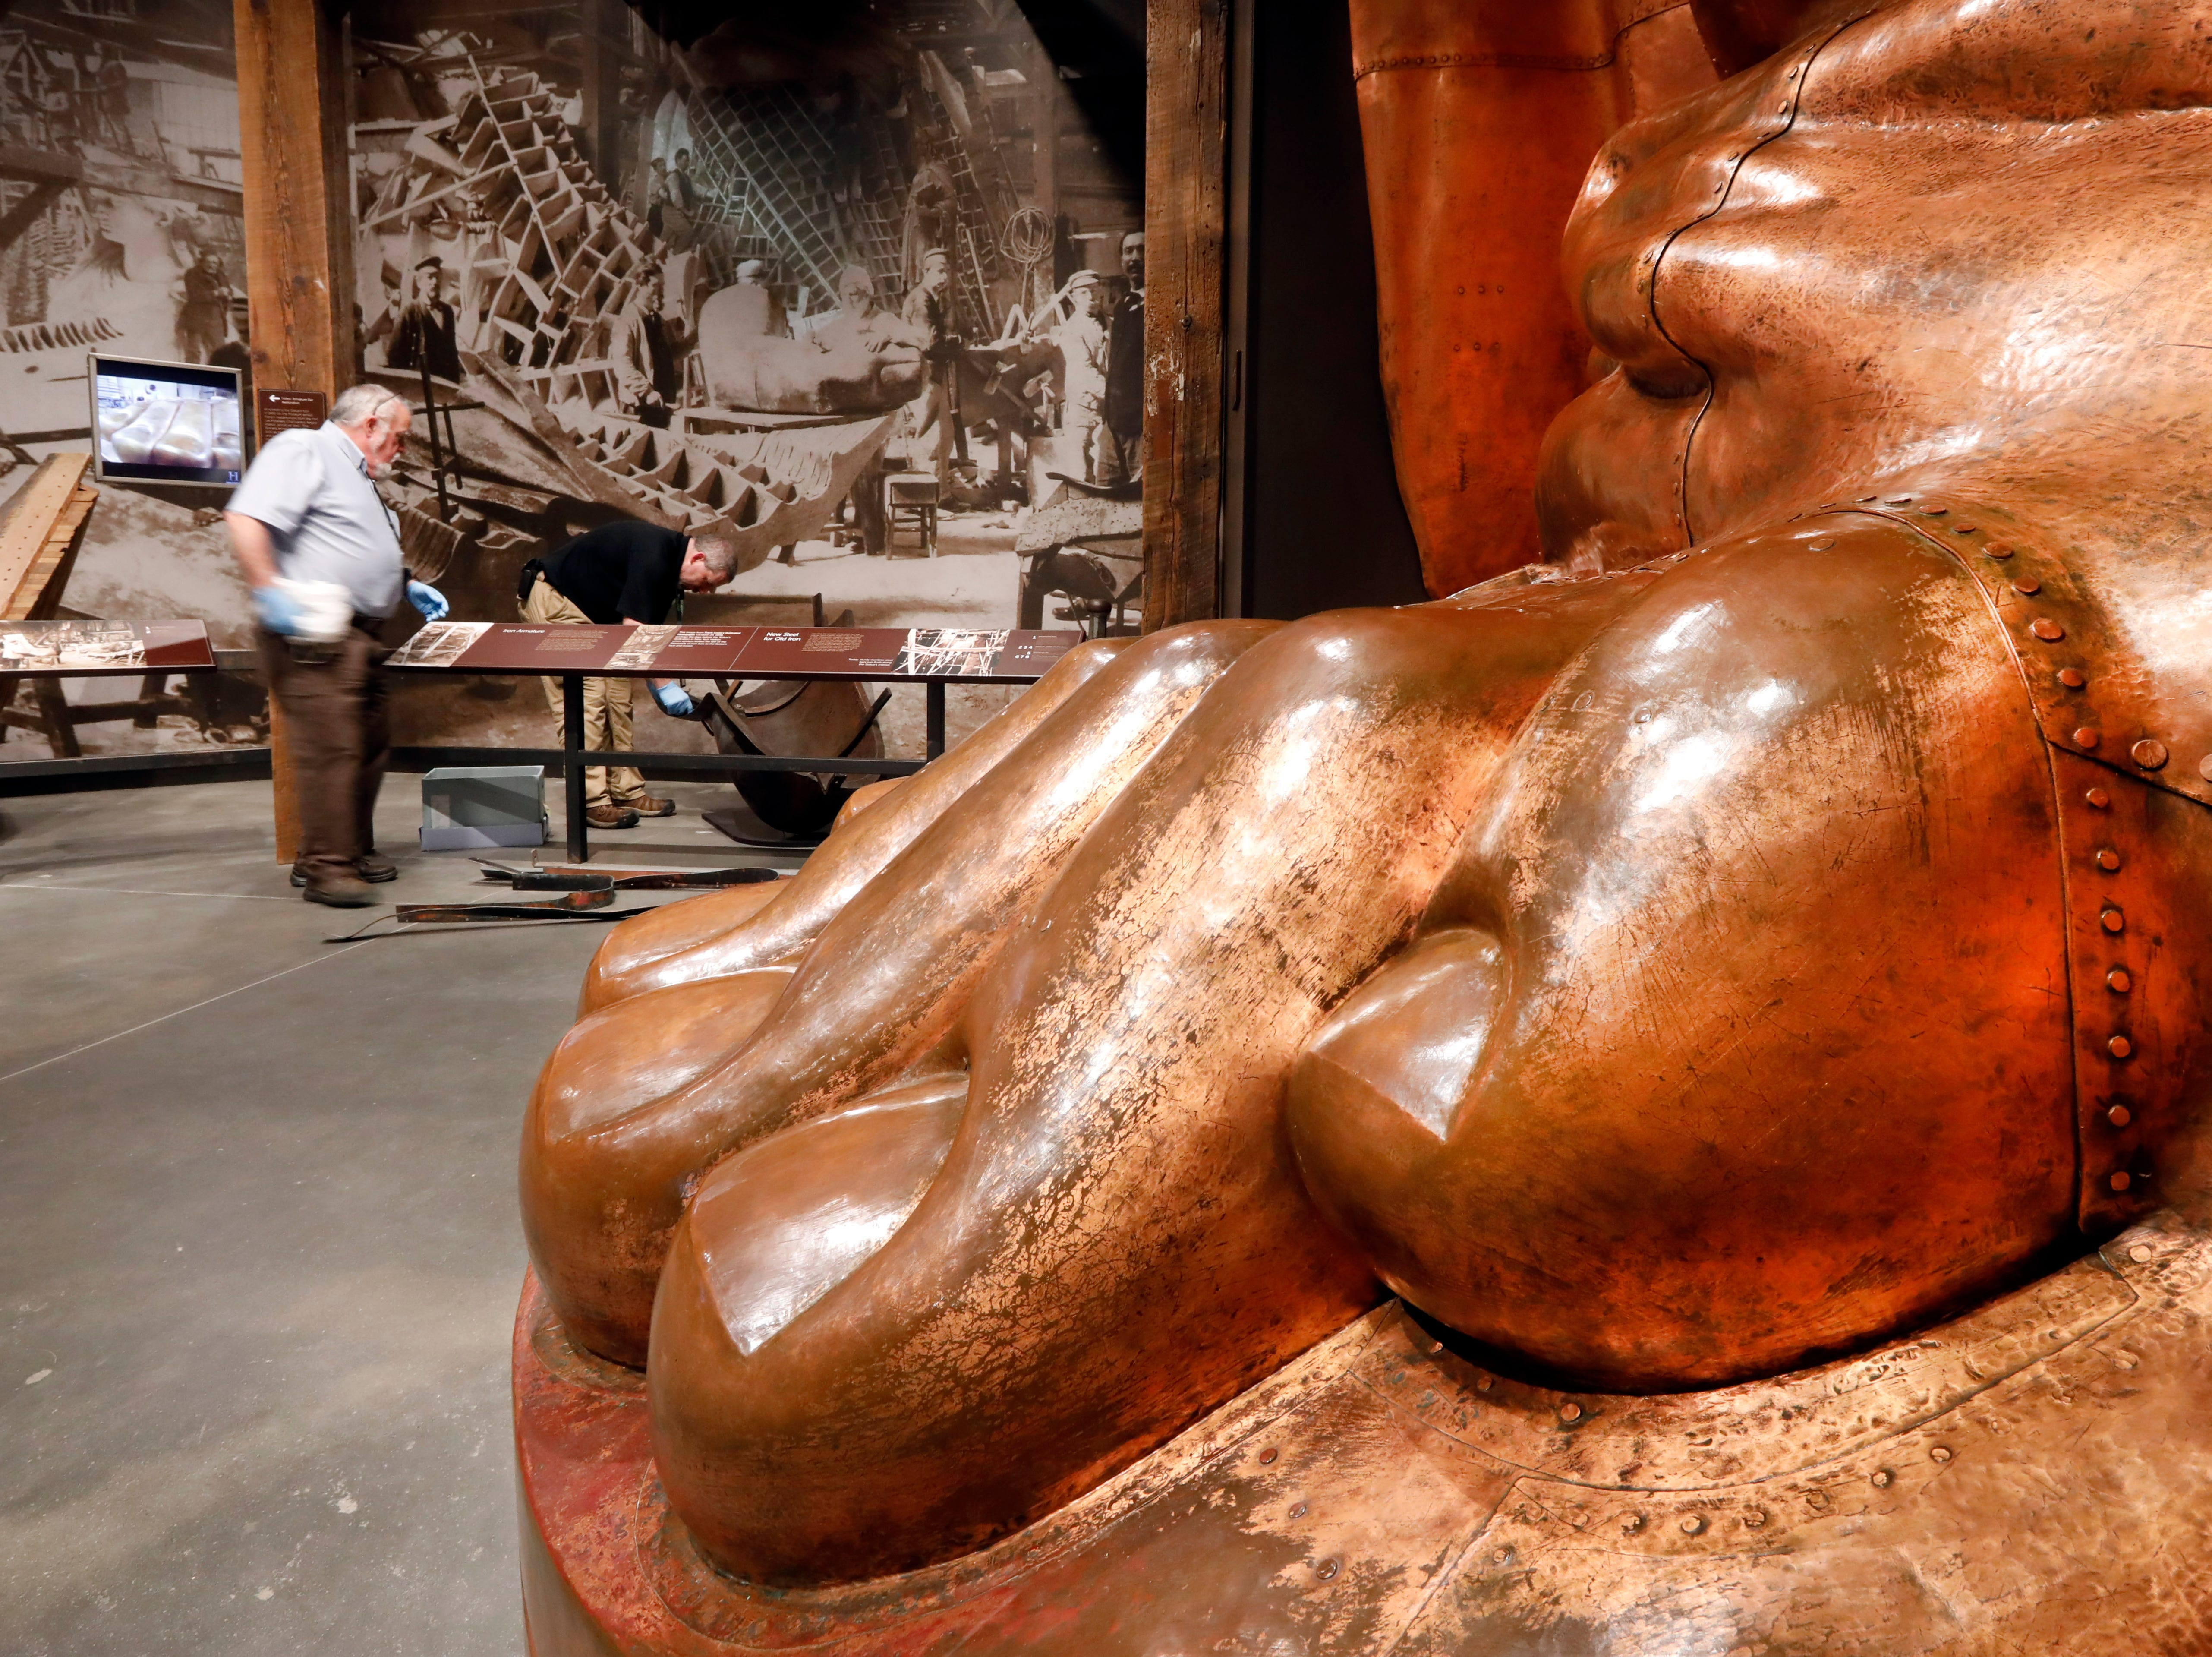 A full-scale model of the Statue of Liberty's foot is among the artifacts displayed in the new Statue of Liberty Museum, on Liberty Island, in New York, Monday, May 13, 2019.